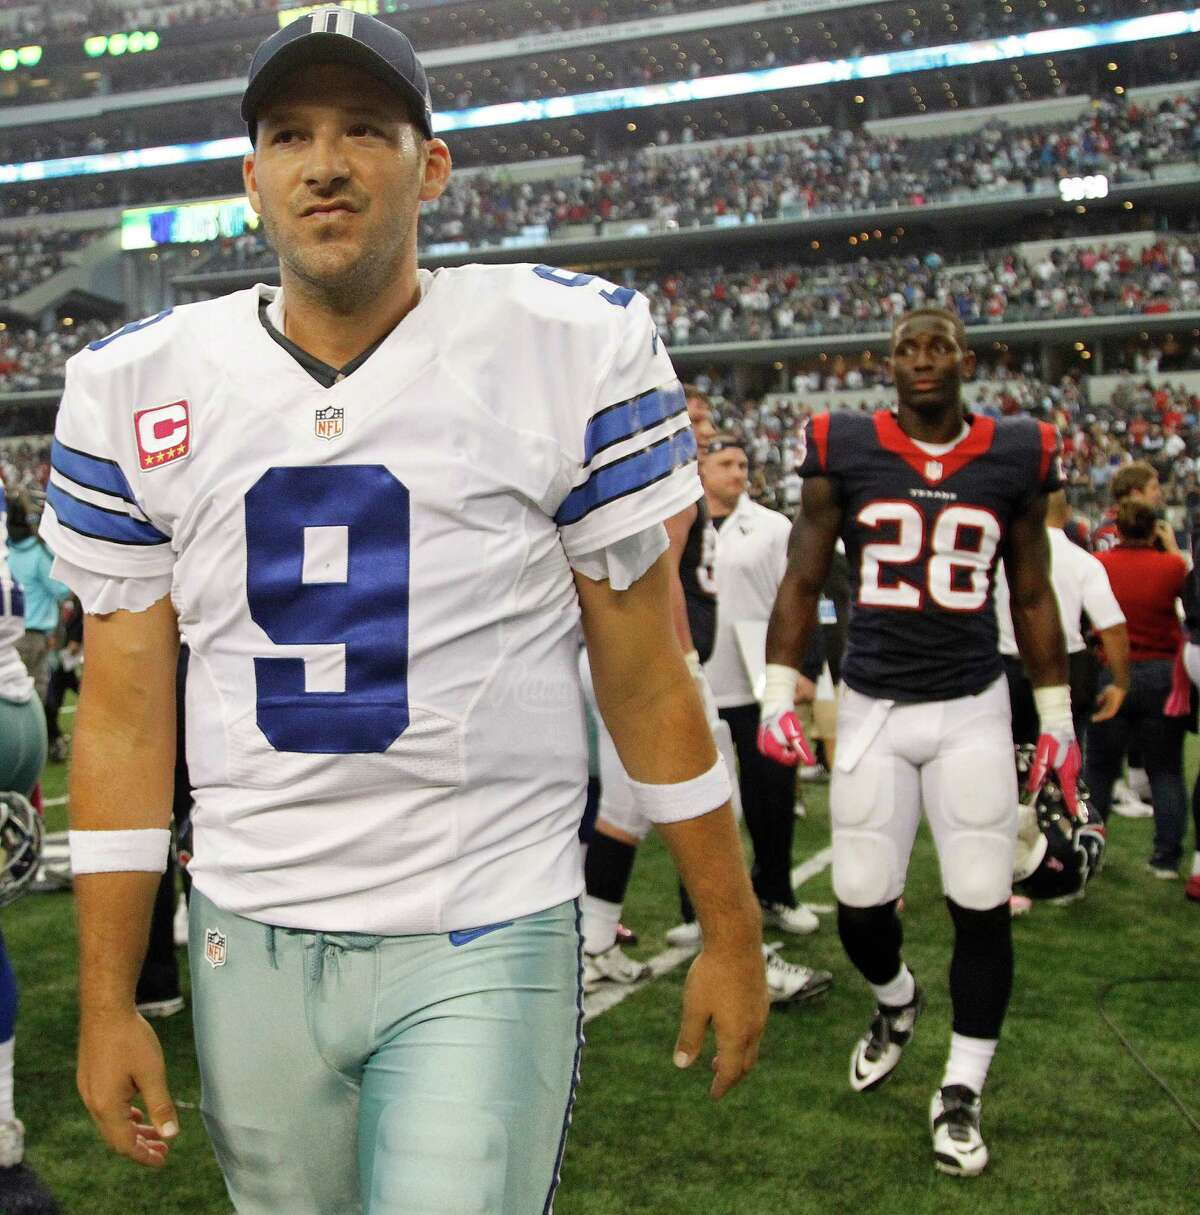 2. Tony Romo, QB, Dallas Cowboys